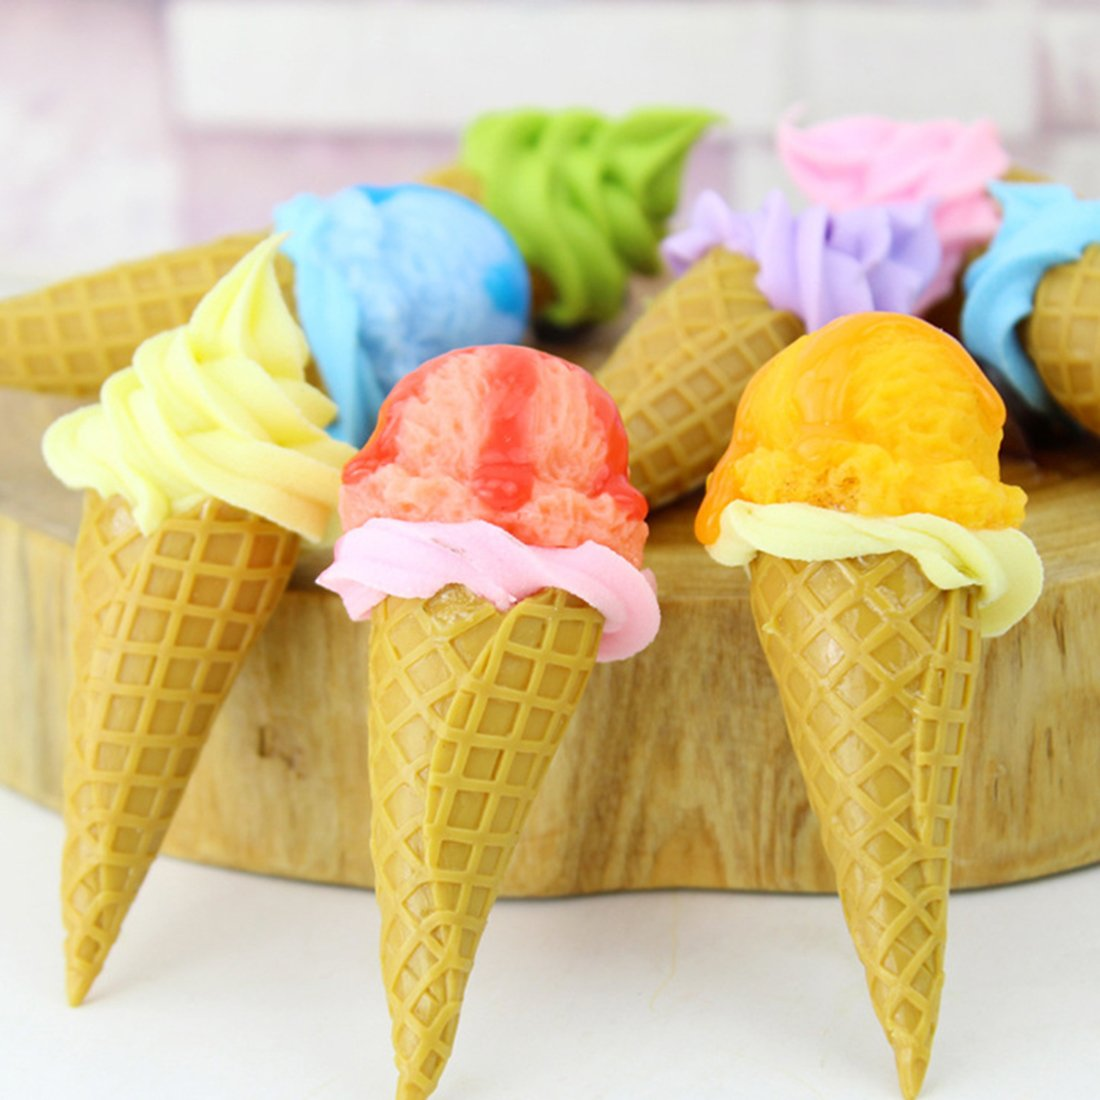 Zubita Ice Cream Cones Toy, 6PCS Realistic Dessert Simulation Ice Cream Model Round Head Ice Cream for Bakery Shop Window Display Craft Photography Props Children Pretend Toys Kitchen Toy Decor